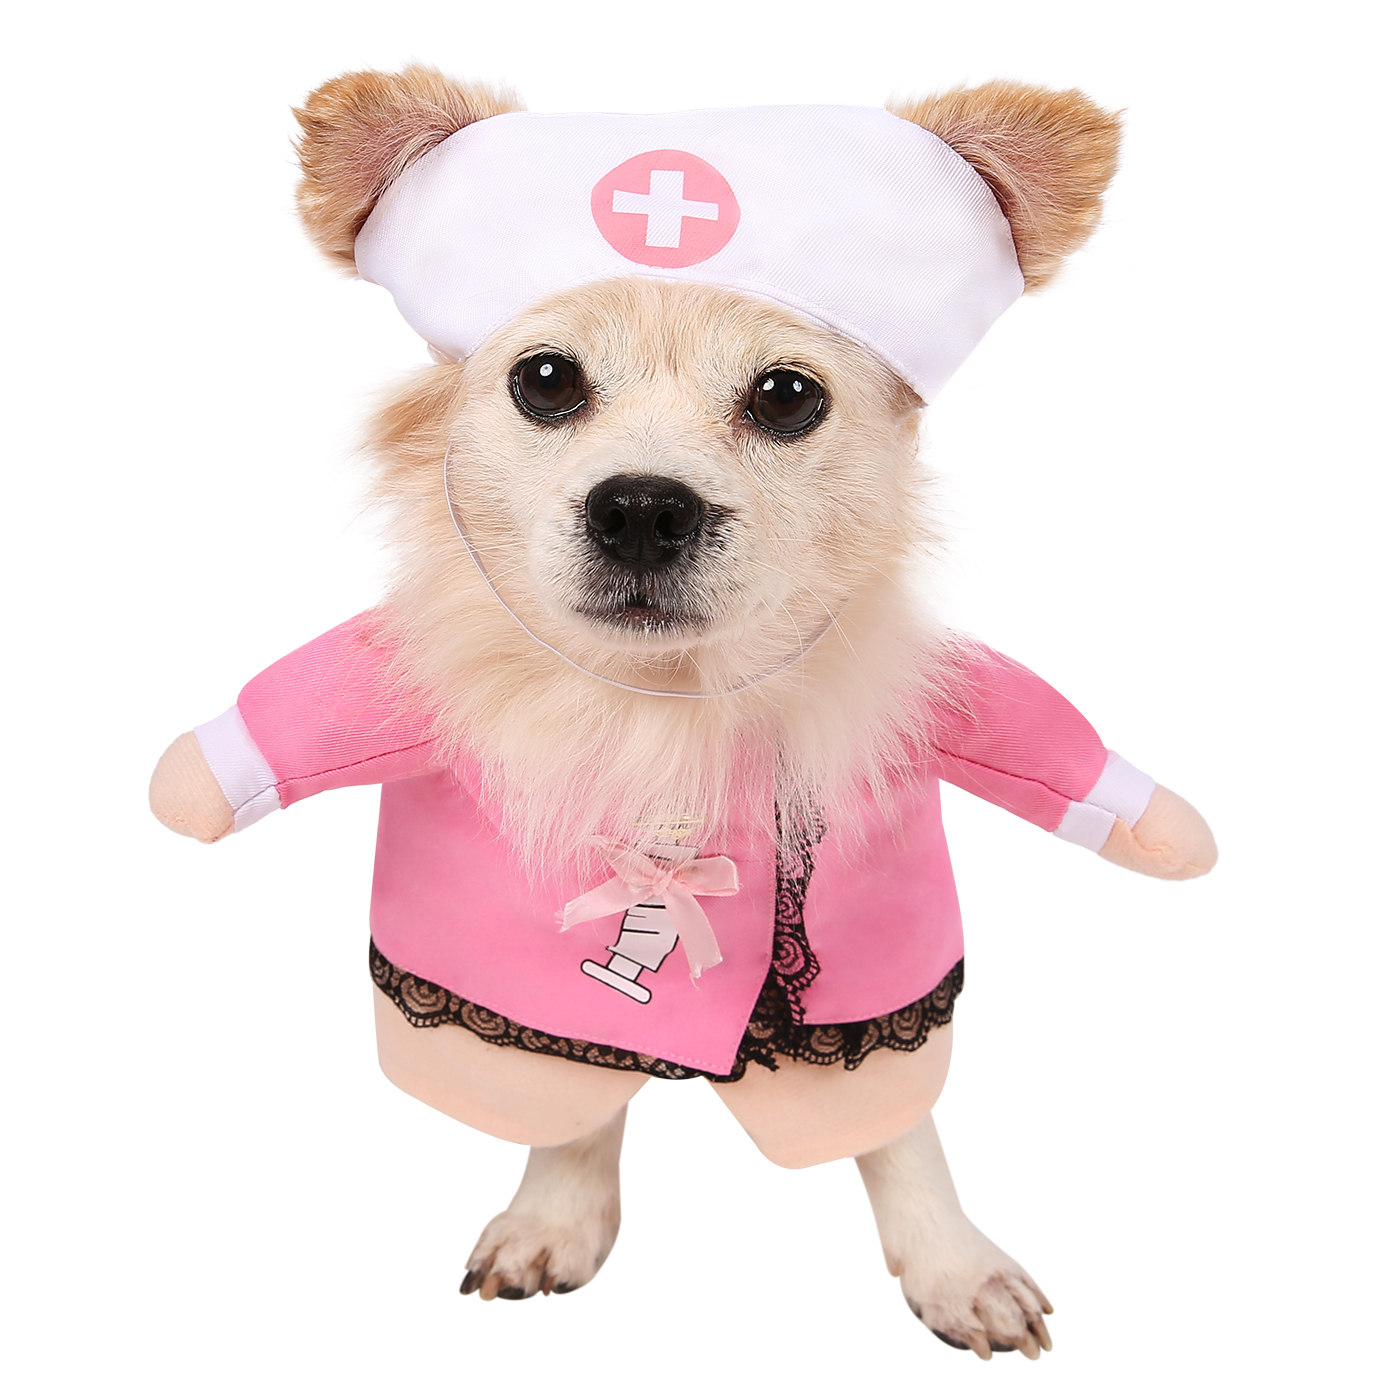 HDE Nurse Dog Costume Halloween Pet Apparel Hat with Pink Nurses Smock for Small and Medium Dogs (Pink, Large)